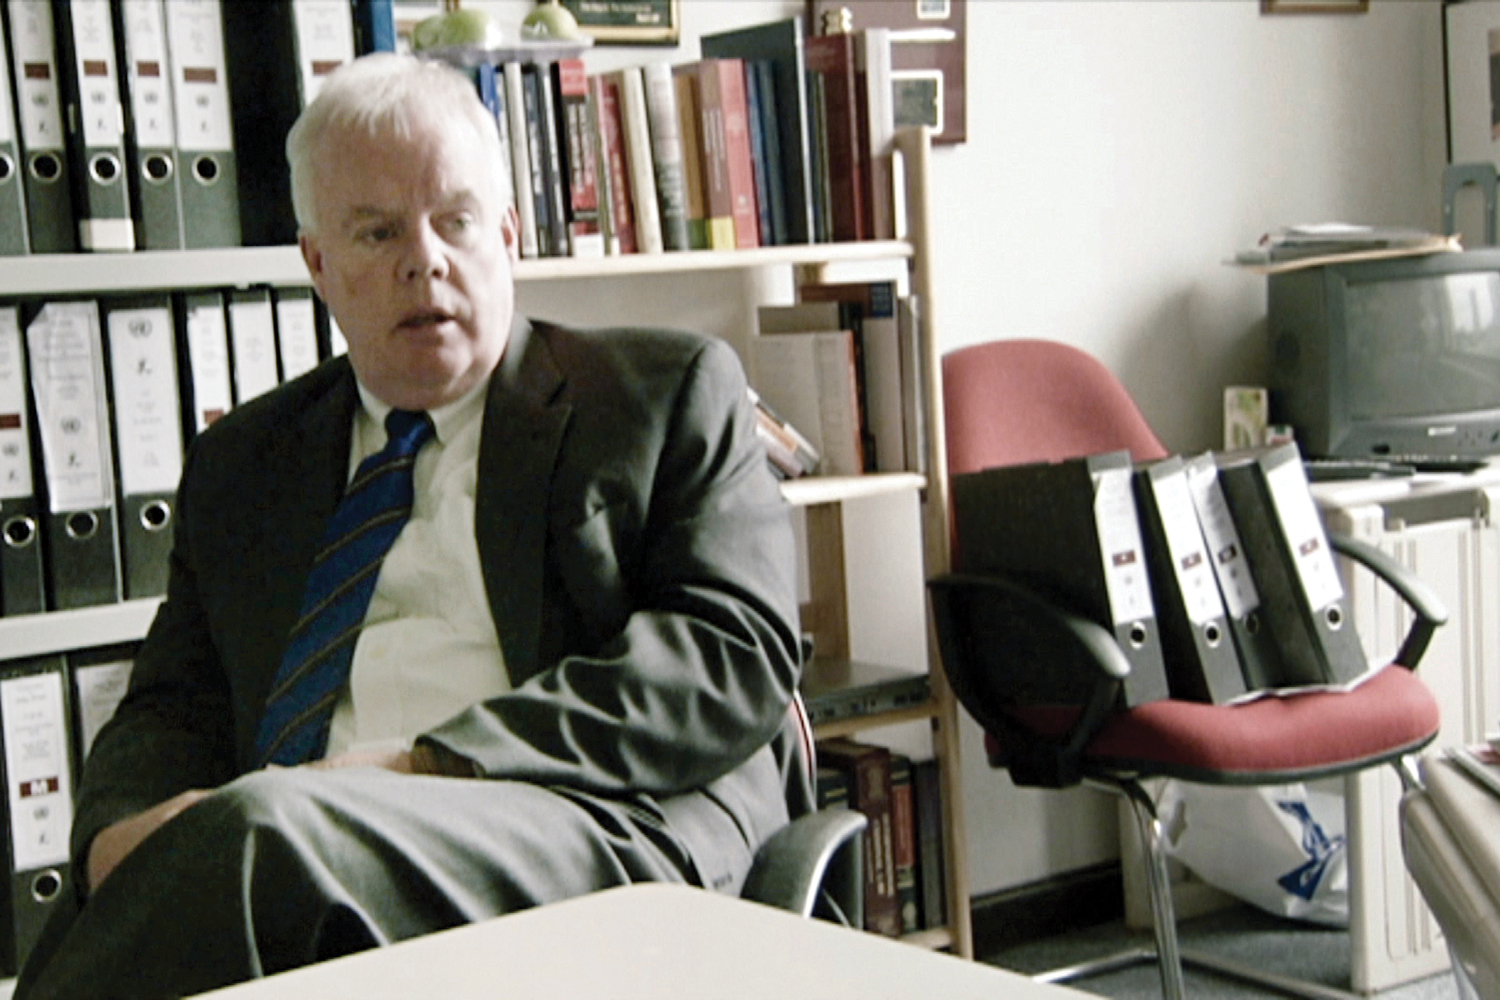 Dermot Groome '85, pictured in a scene from Frontline's documentary The Trial of Ratko Mladić.